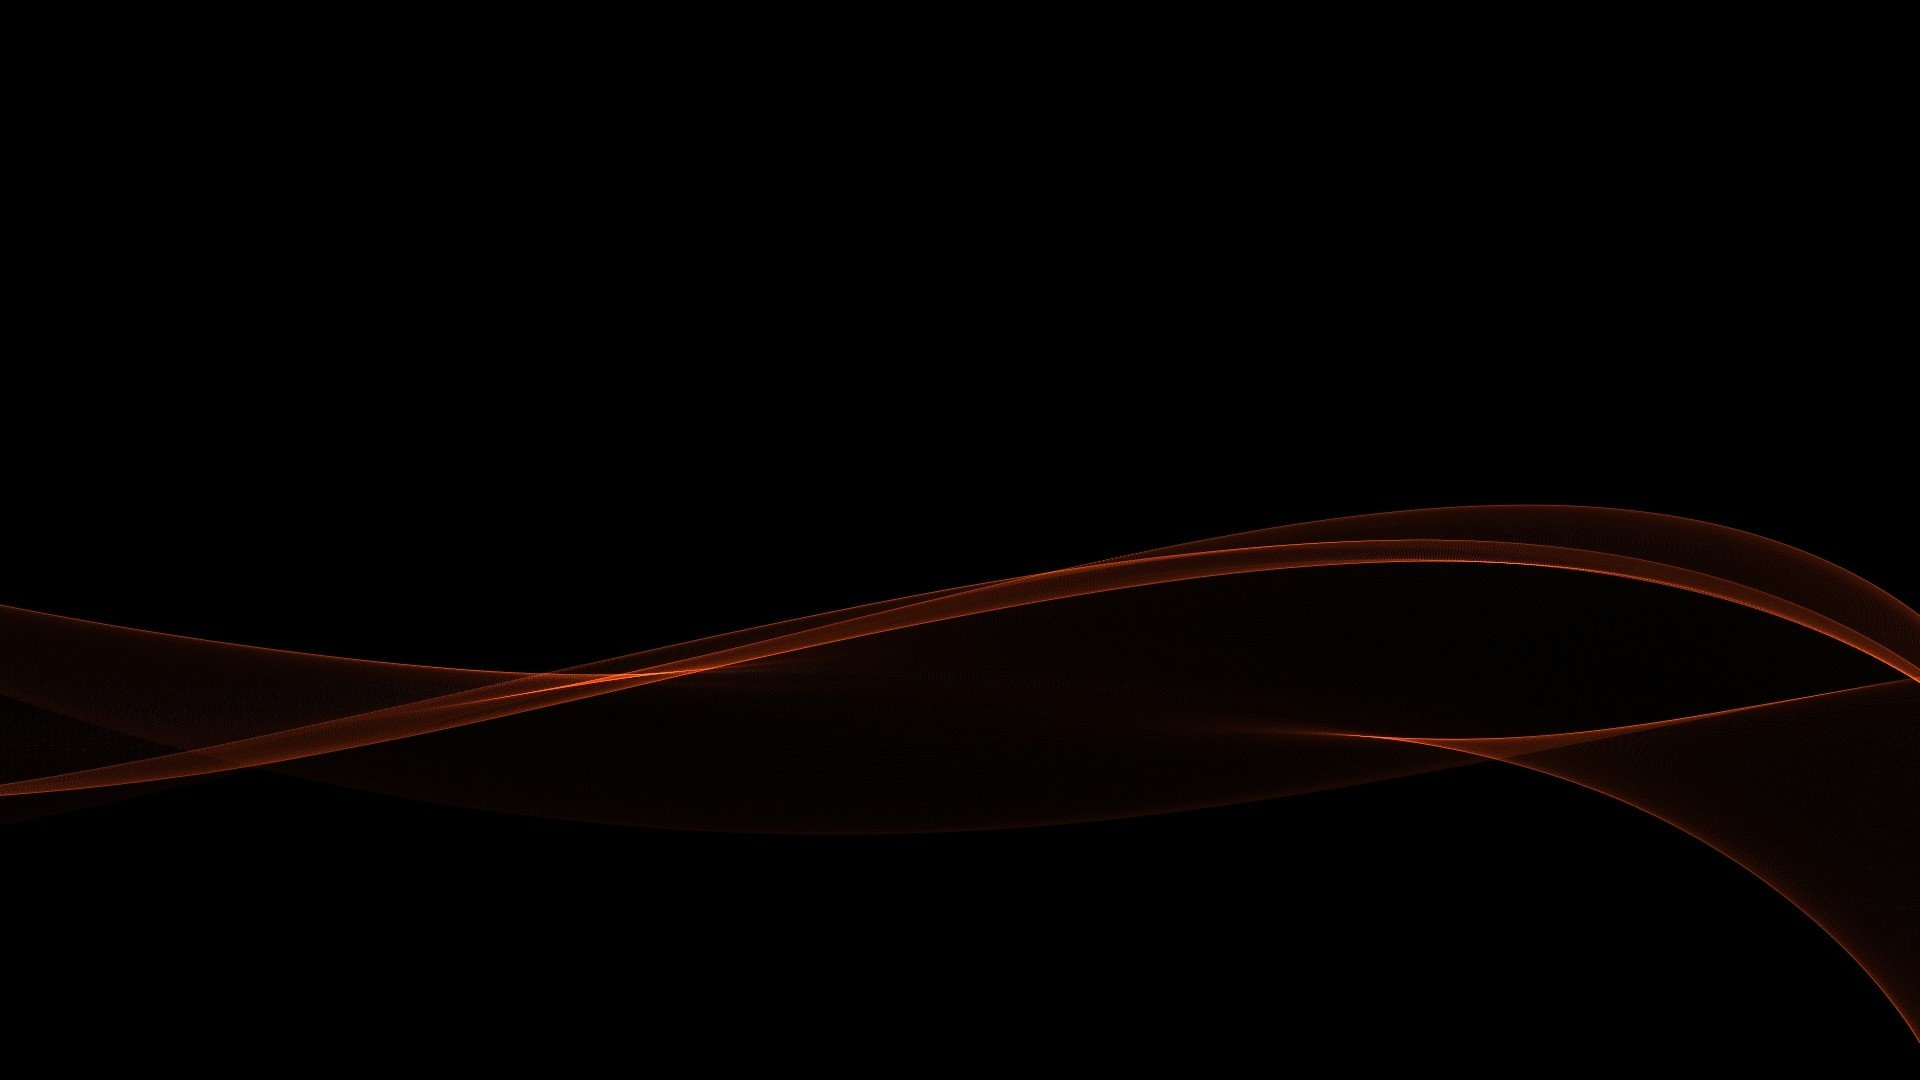 red gradient minimalistic waves black abstract wallpaper desktop 1920x1080